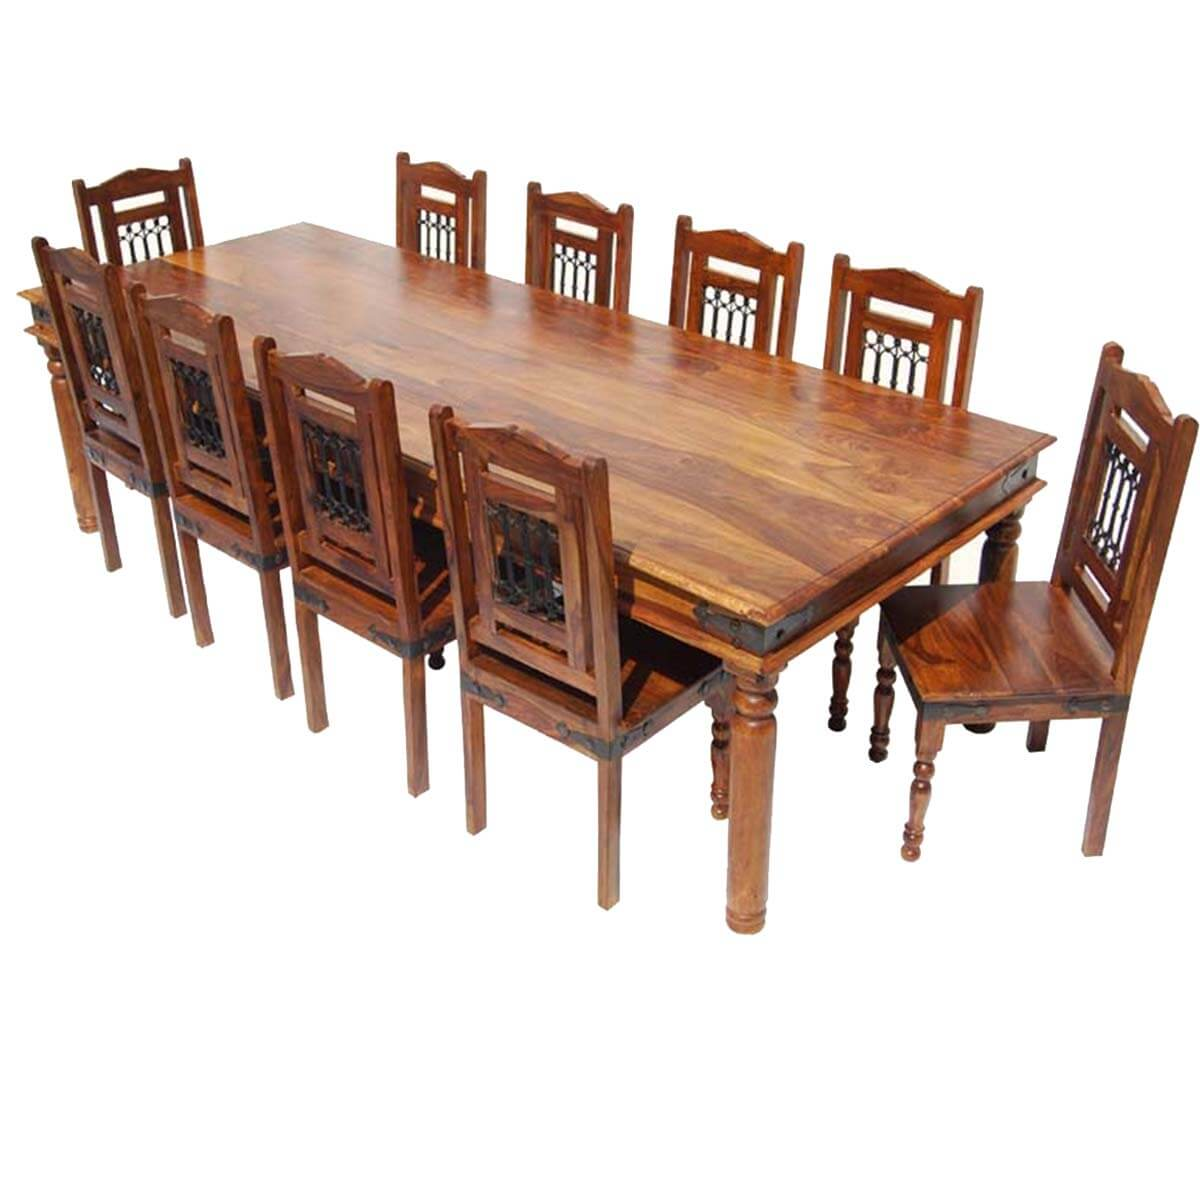 Solid Wood Large Rustic Dining Room Table Chair Sideboard Set